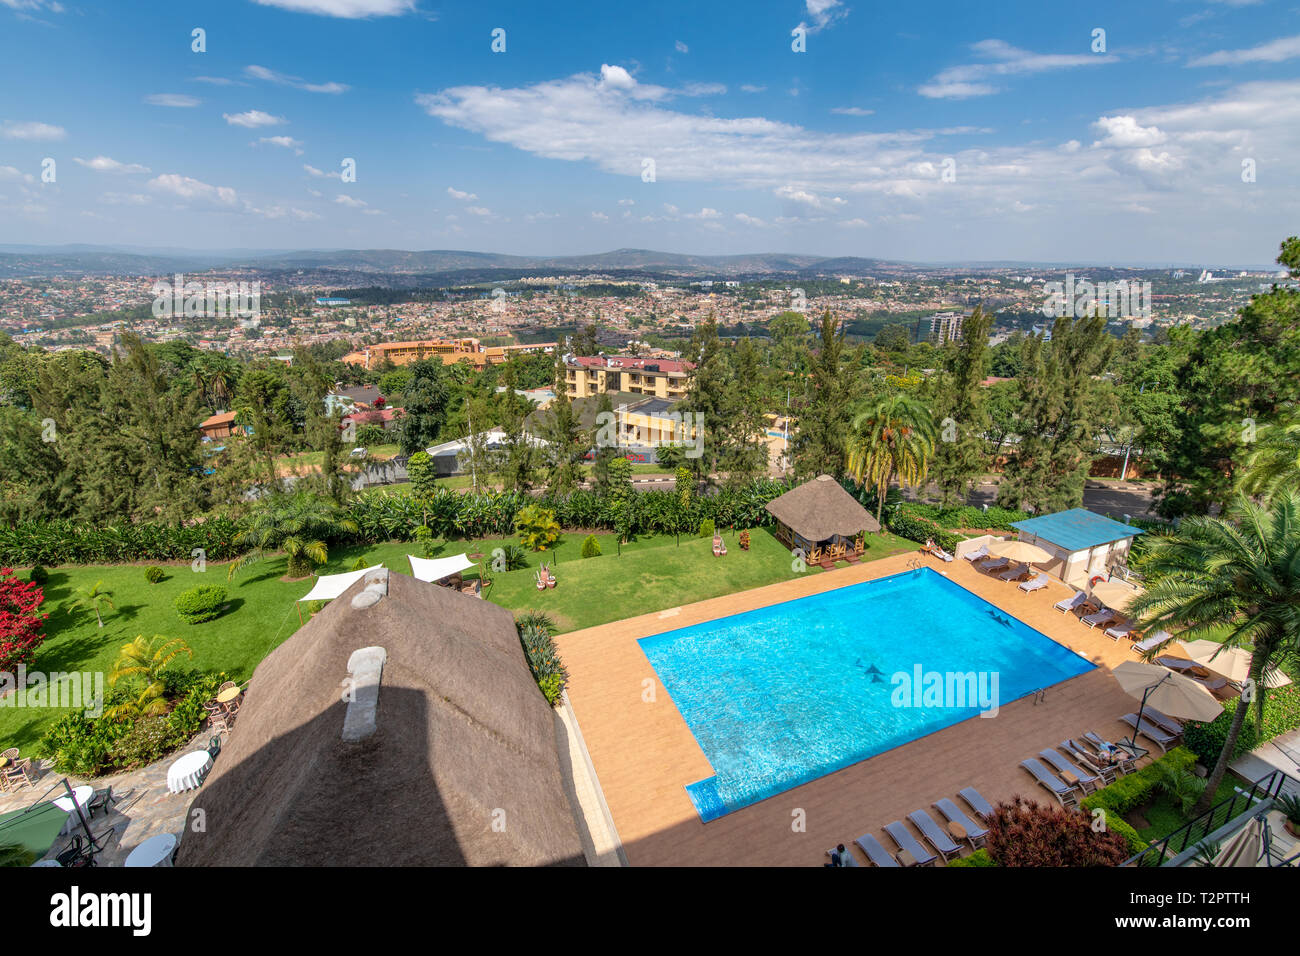 The rear pool of the Hotel des Mille Collines (Hotel Rwanda), Kigali, Rwanda. - Stock Image